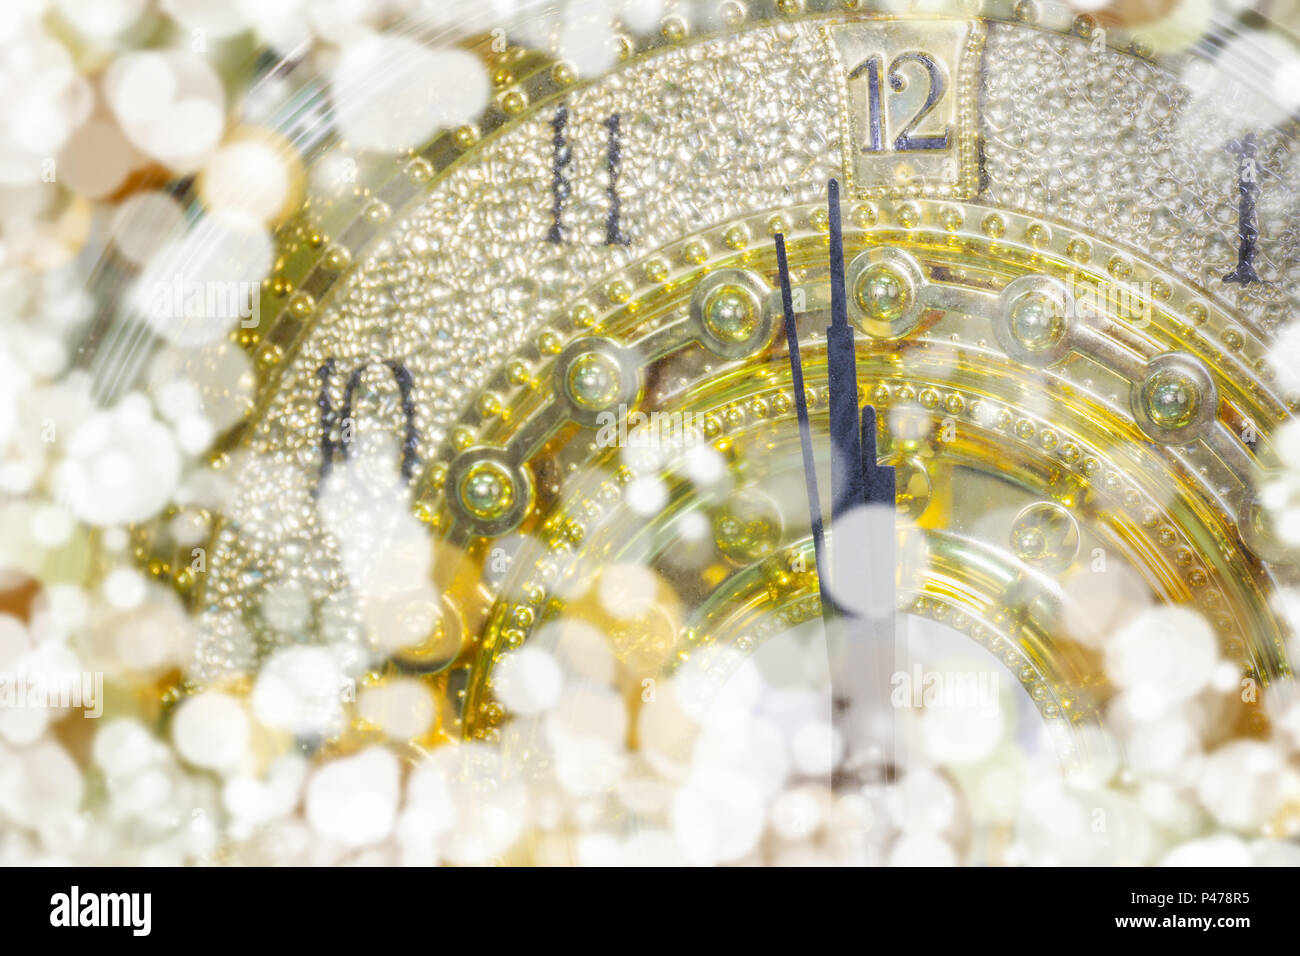 New Year's at midnight time, Luxury gold clock countdown to new year, effect light. Stock Photo